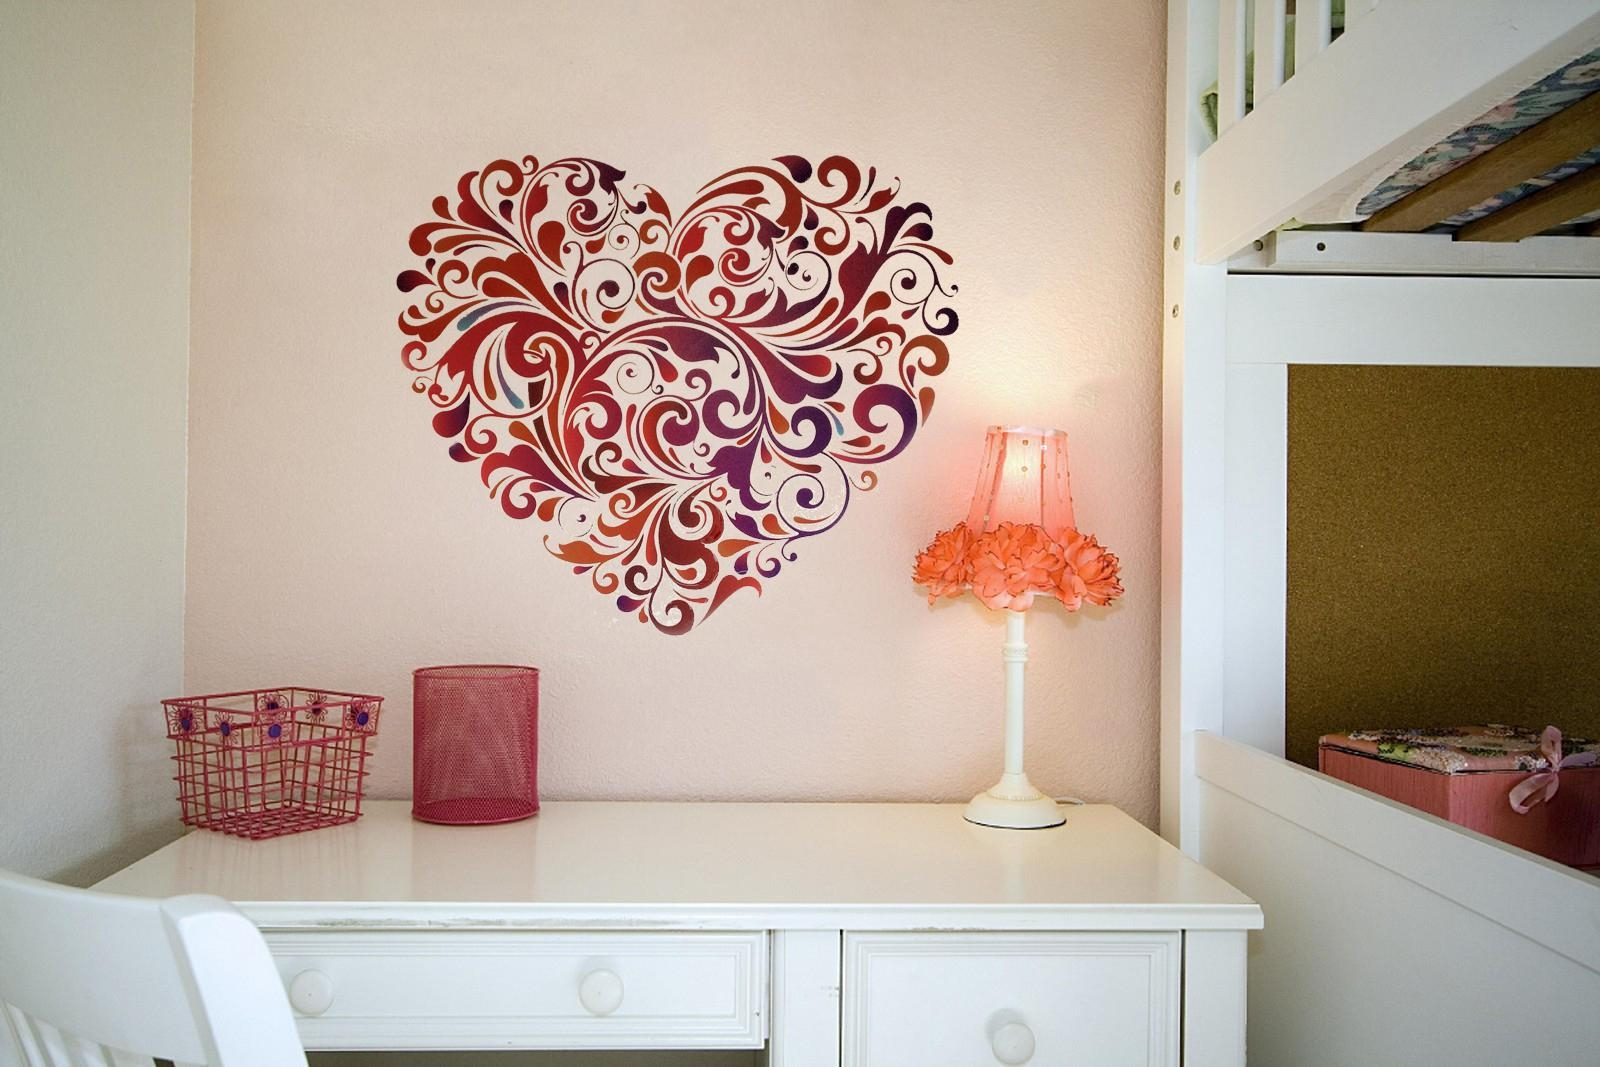 Unique Wall Decor Ideas To Home Decor Wall Art Ideas – Home With Wall Art For Bedrooms (View 13 of 21)